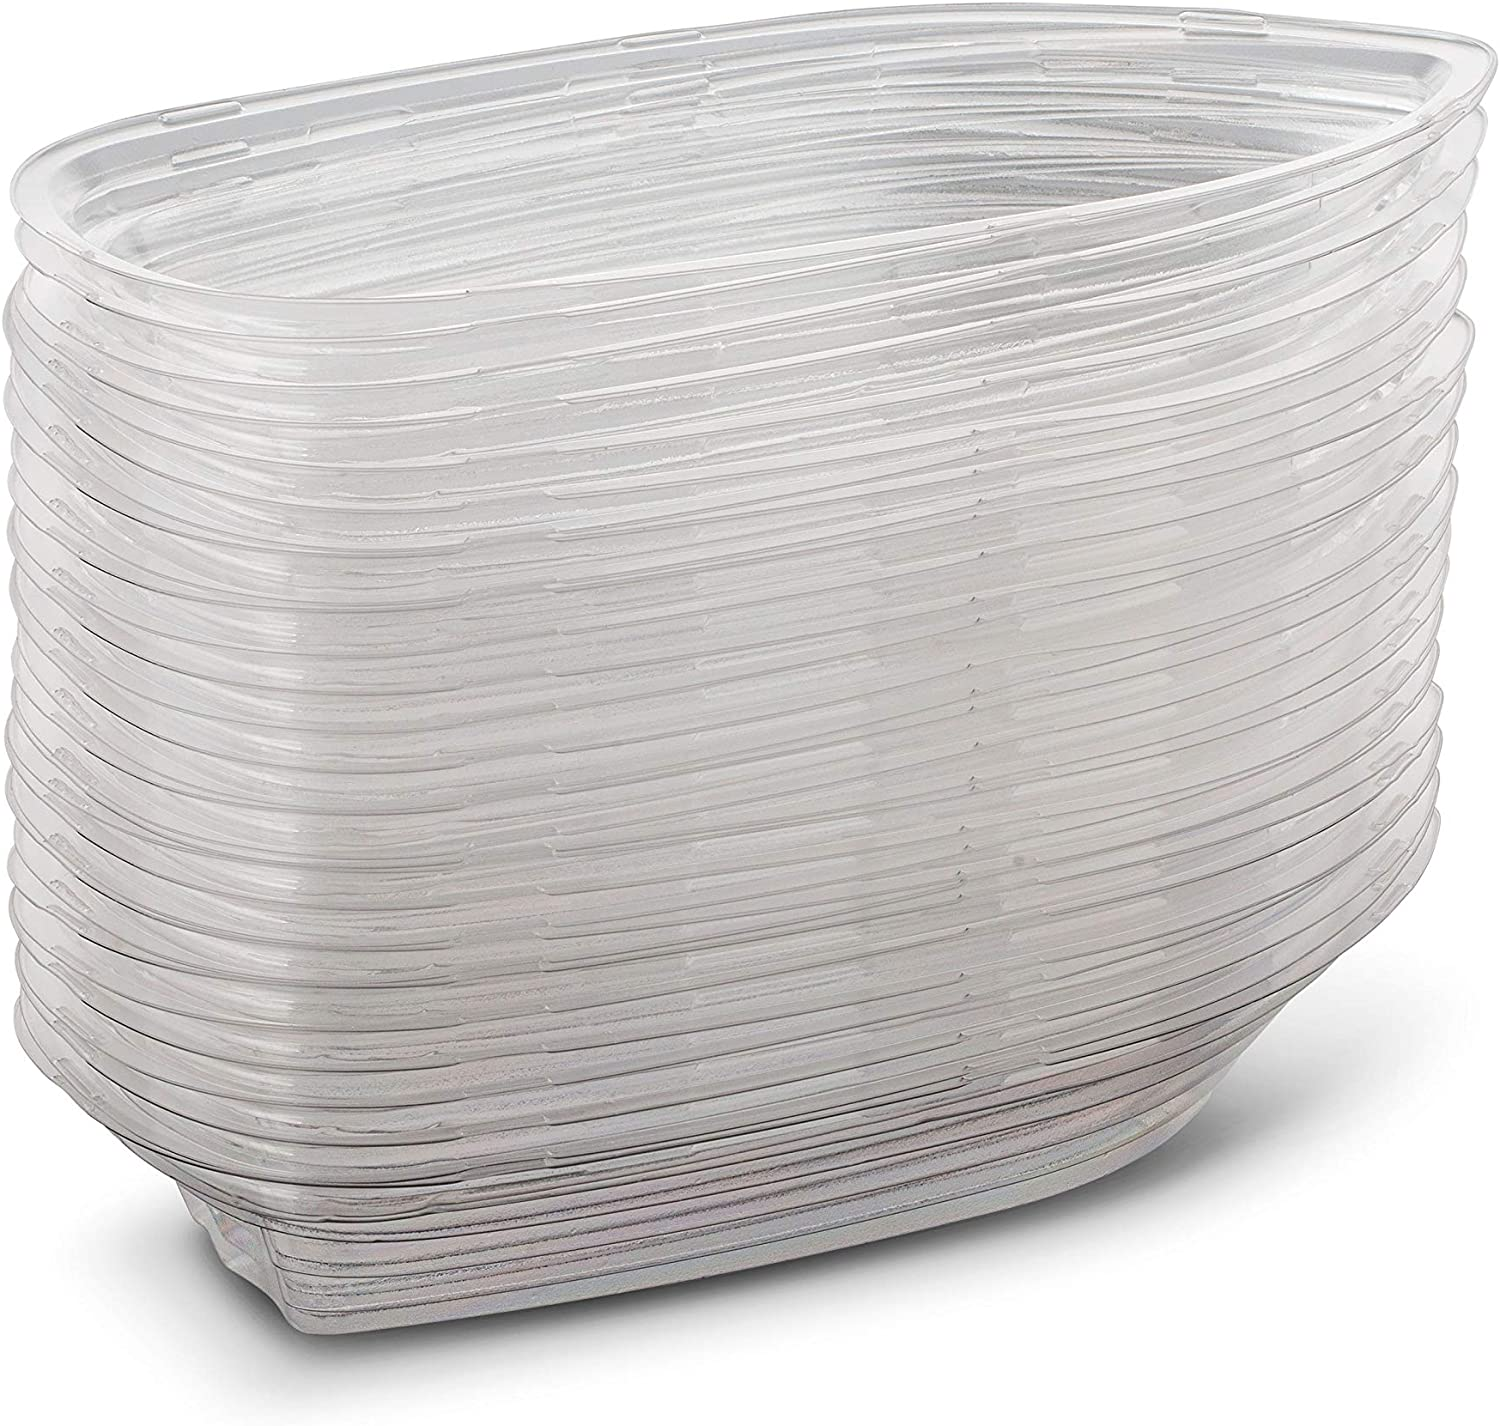 Perfect Size Made from Durable OPS Plastic Great Party Dish 60 Pieces Clear Plastic Disposable Banana Split Boats MT Products 8 oz